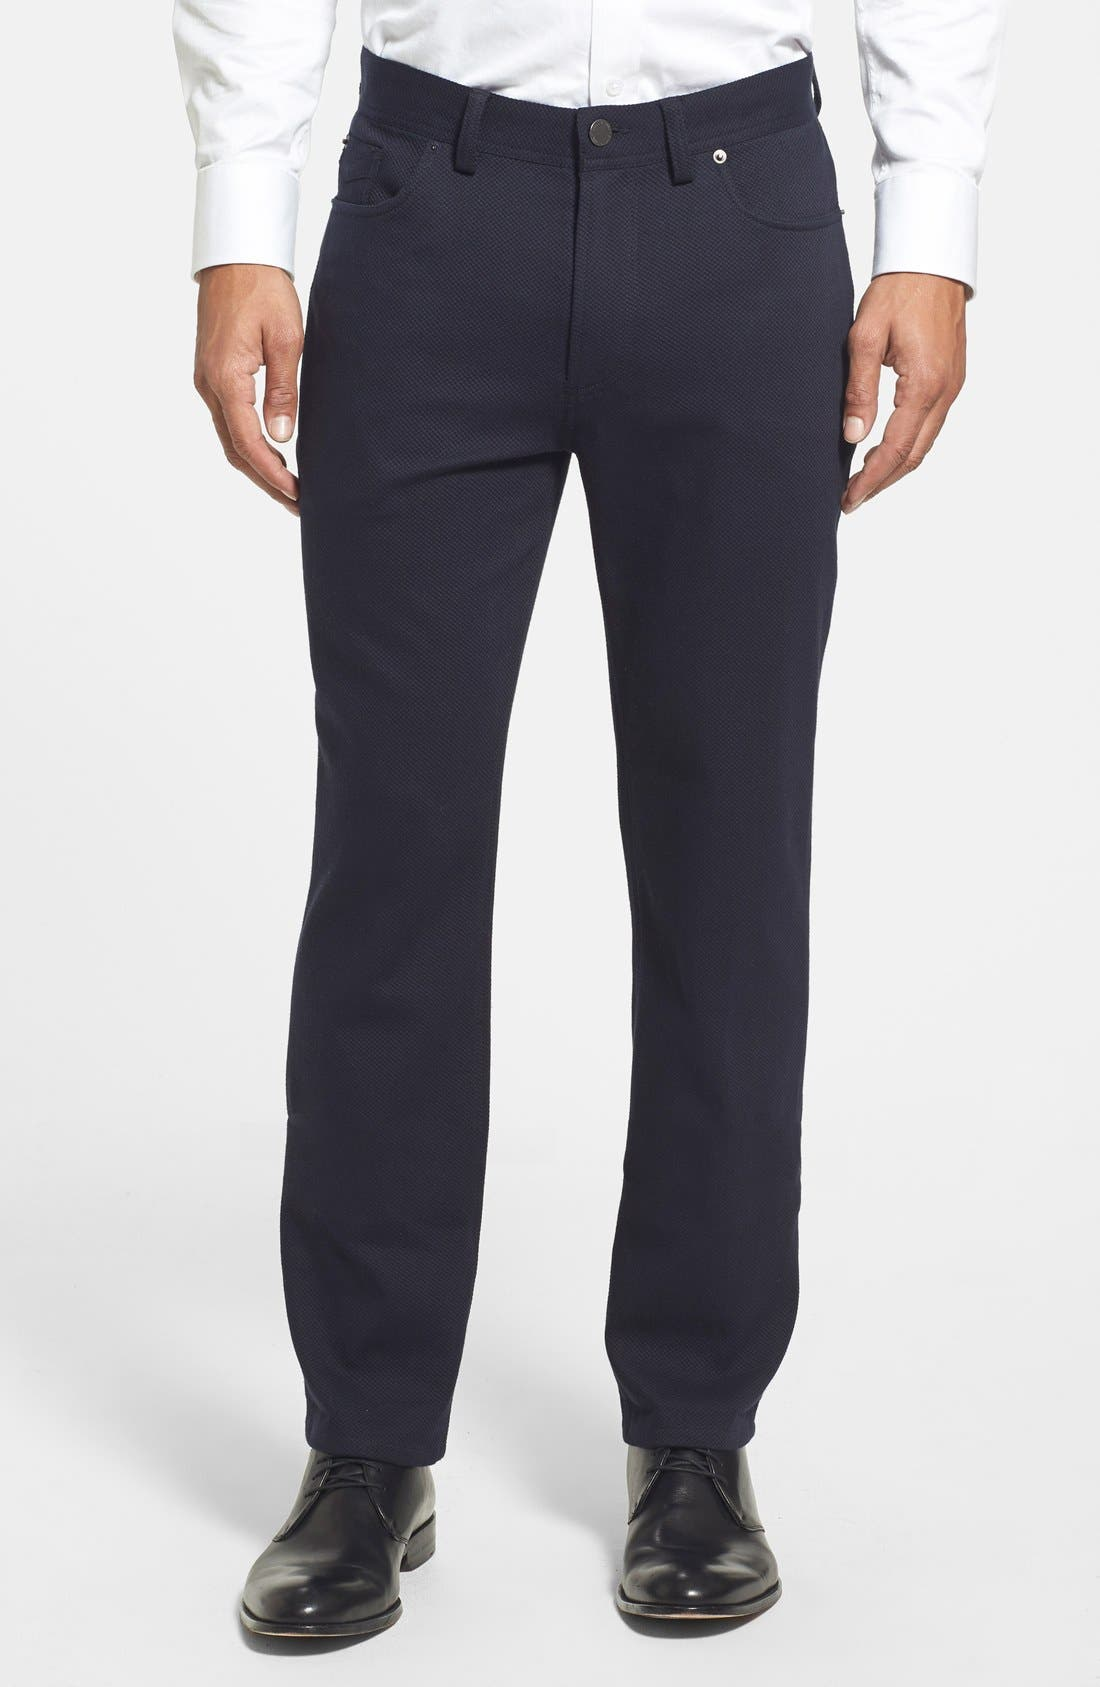 VINCE CAMUTO Straight Leg Five Pocket Stretch Pants